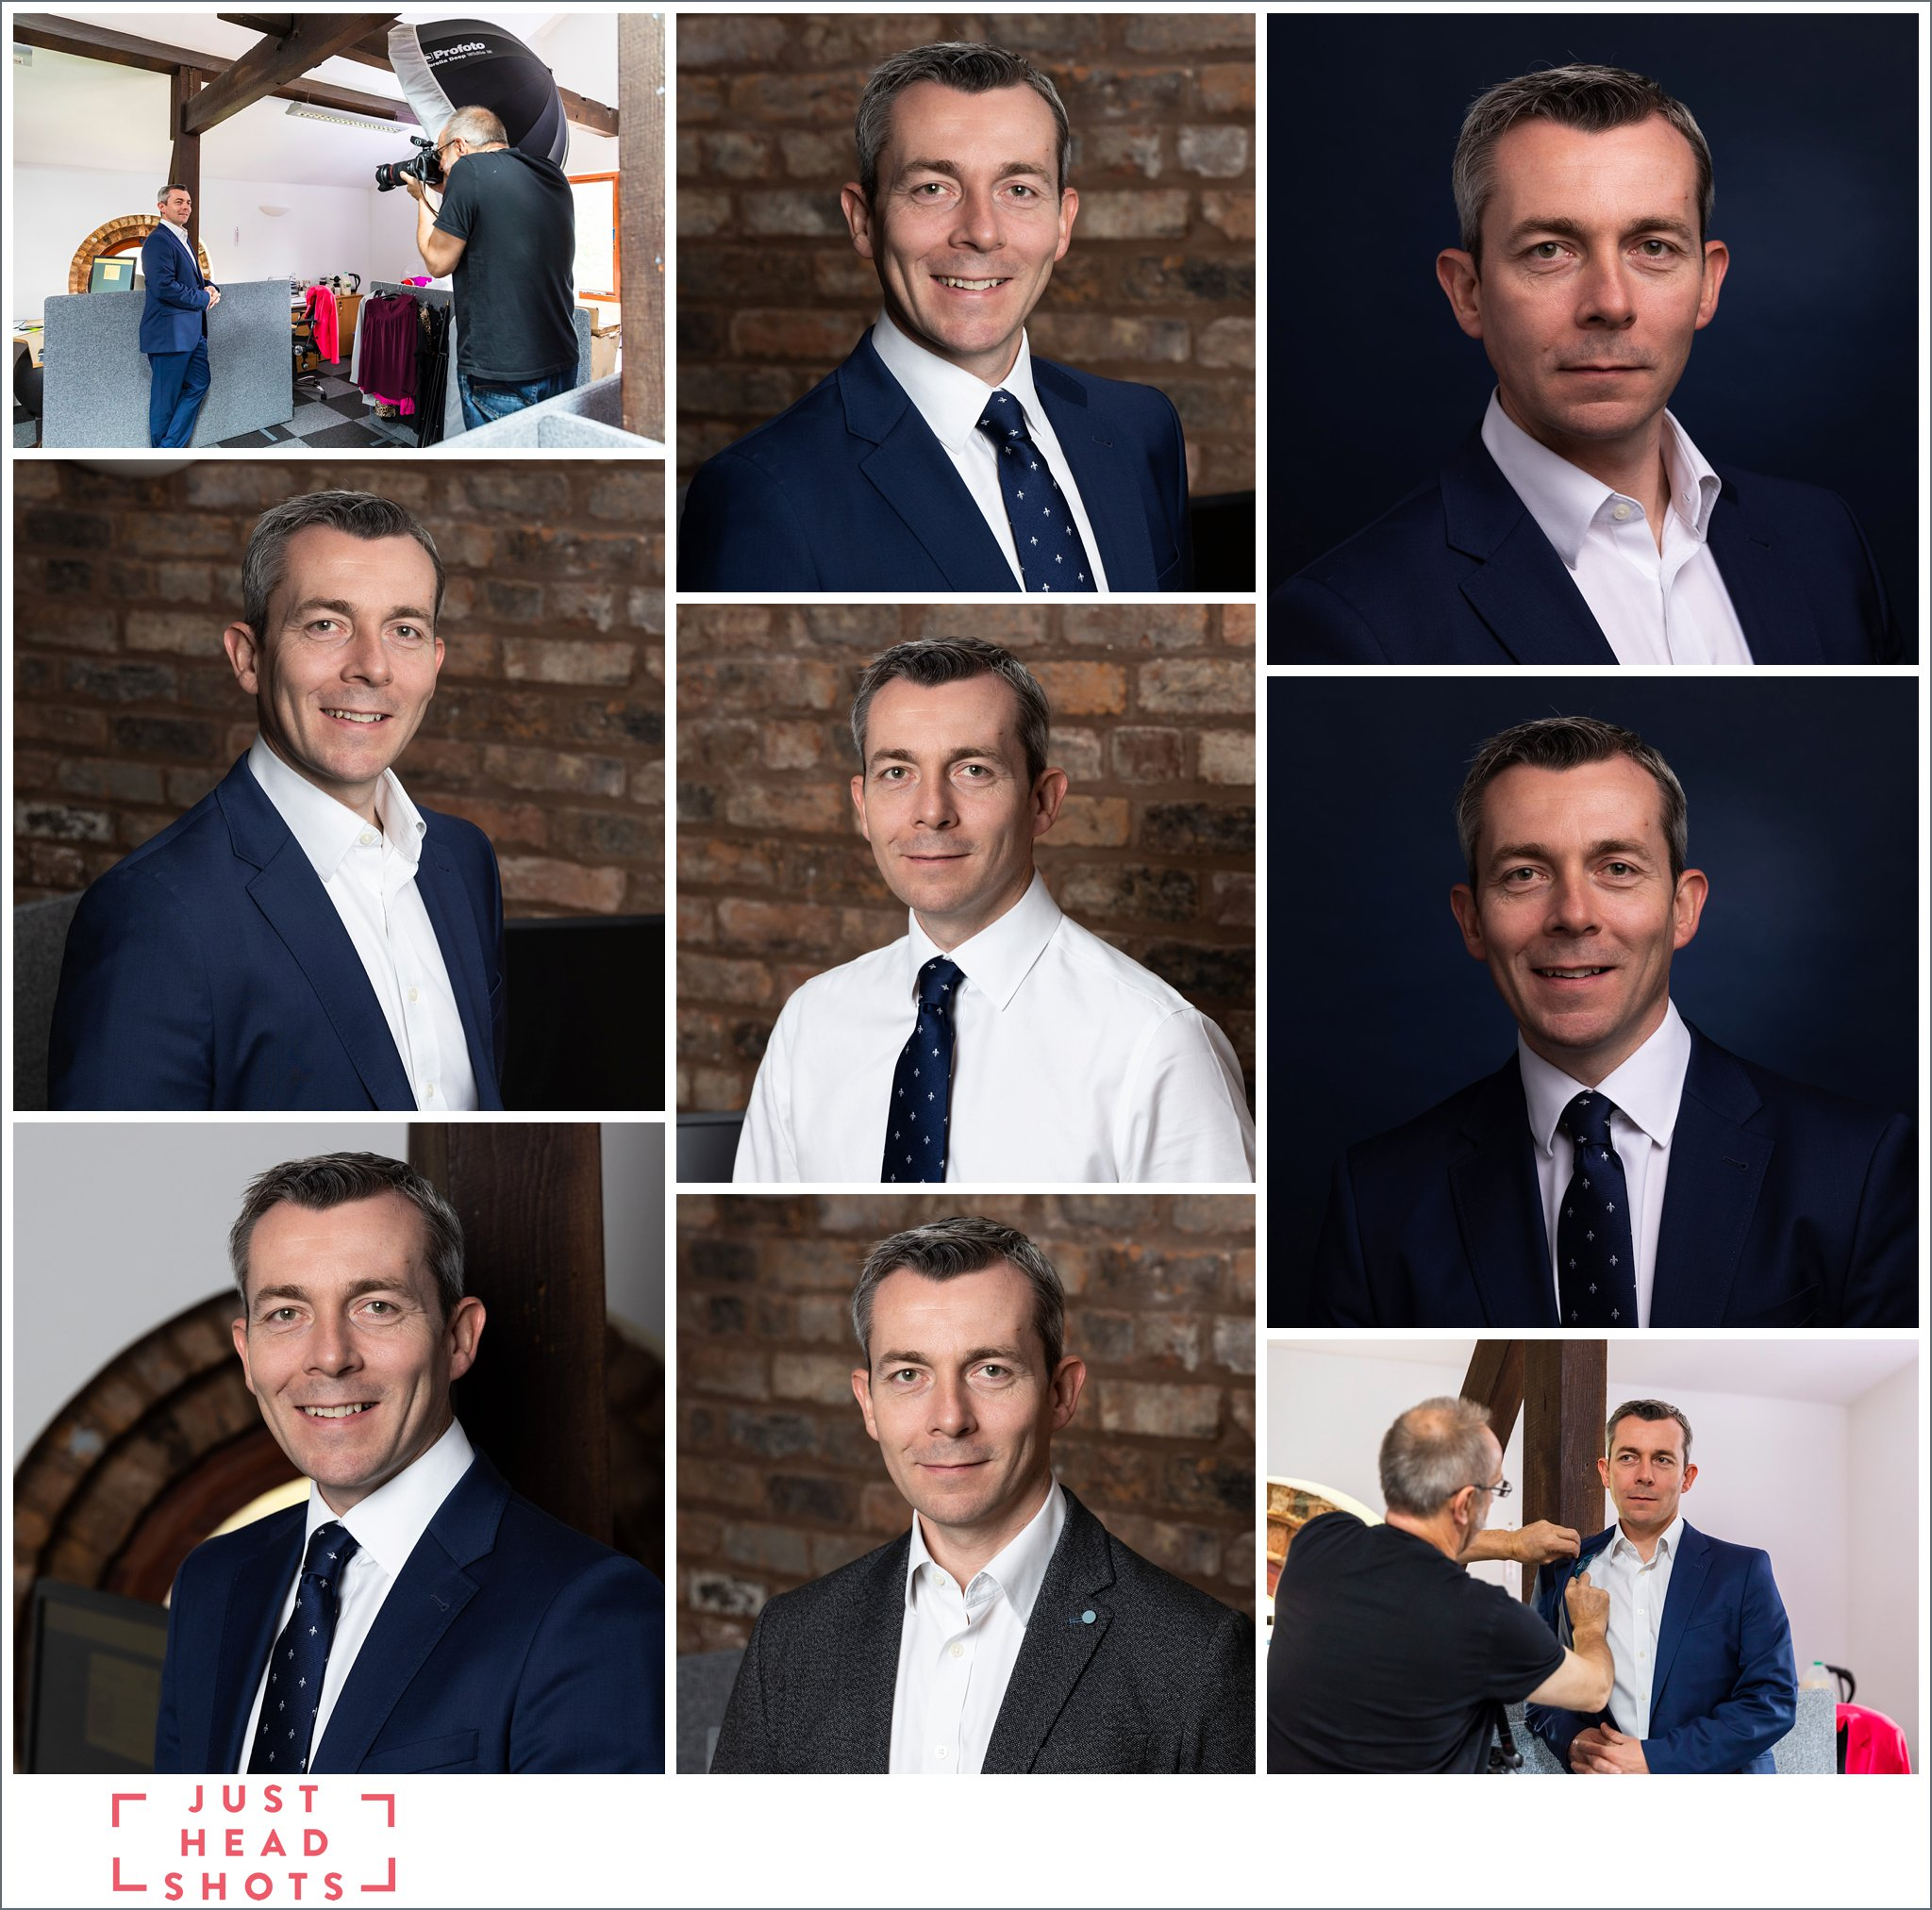 Professional headshots photos taken in Warrington of wealth management consultant in suit against dark blue backgrounds and against natural backgrounds with behind the scenes photos